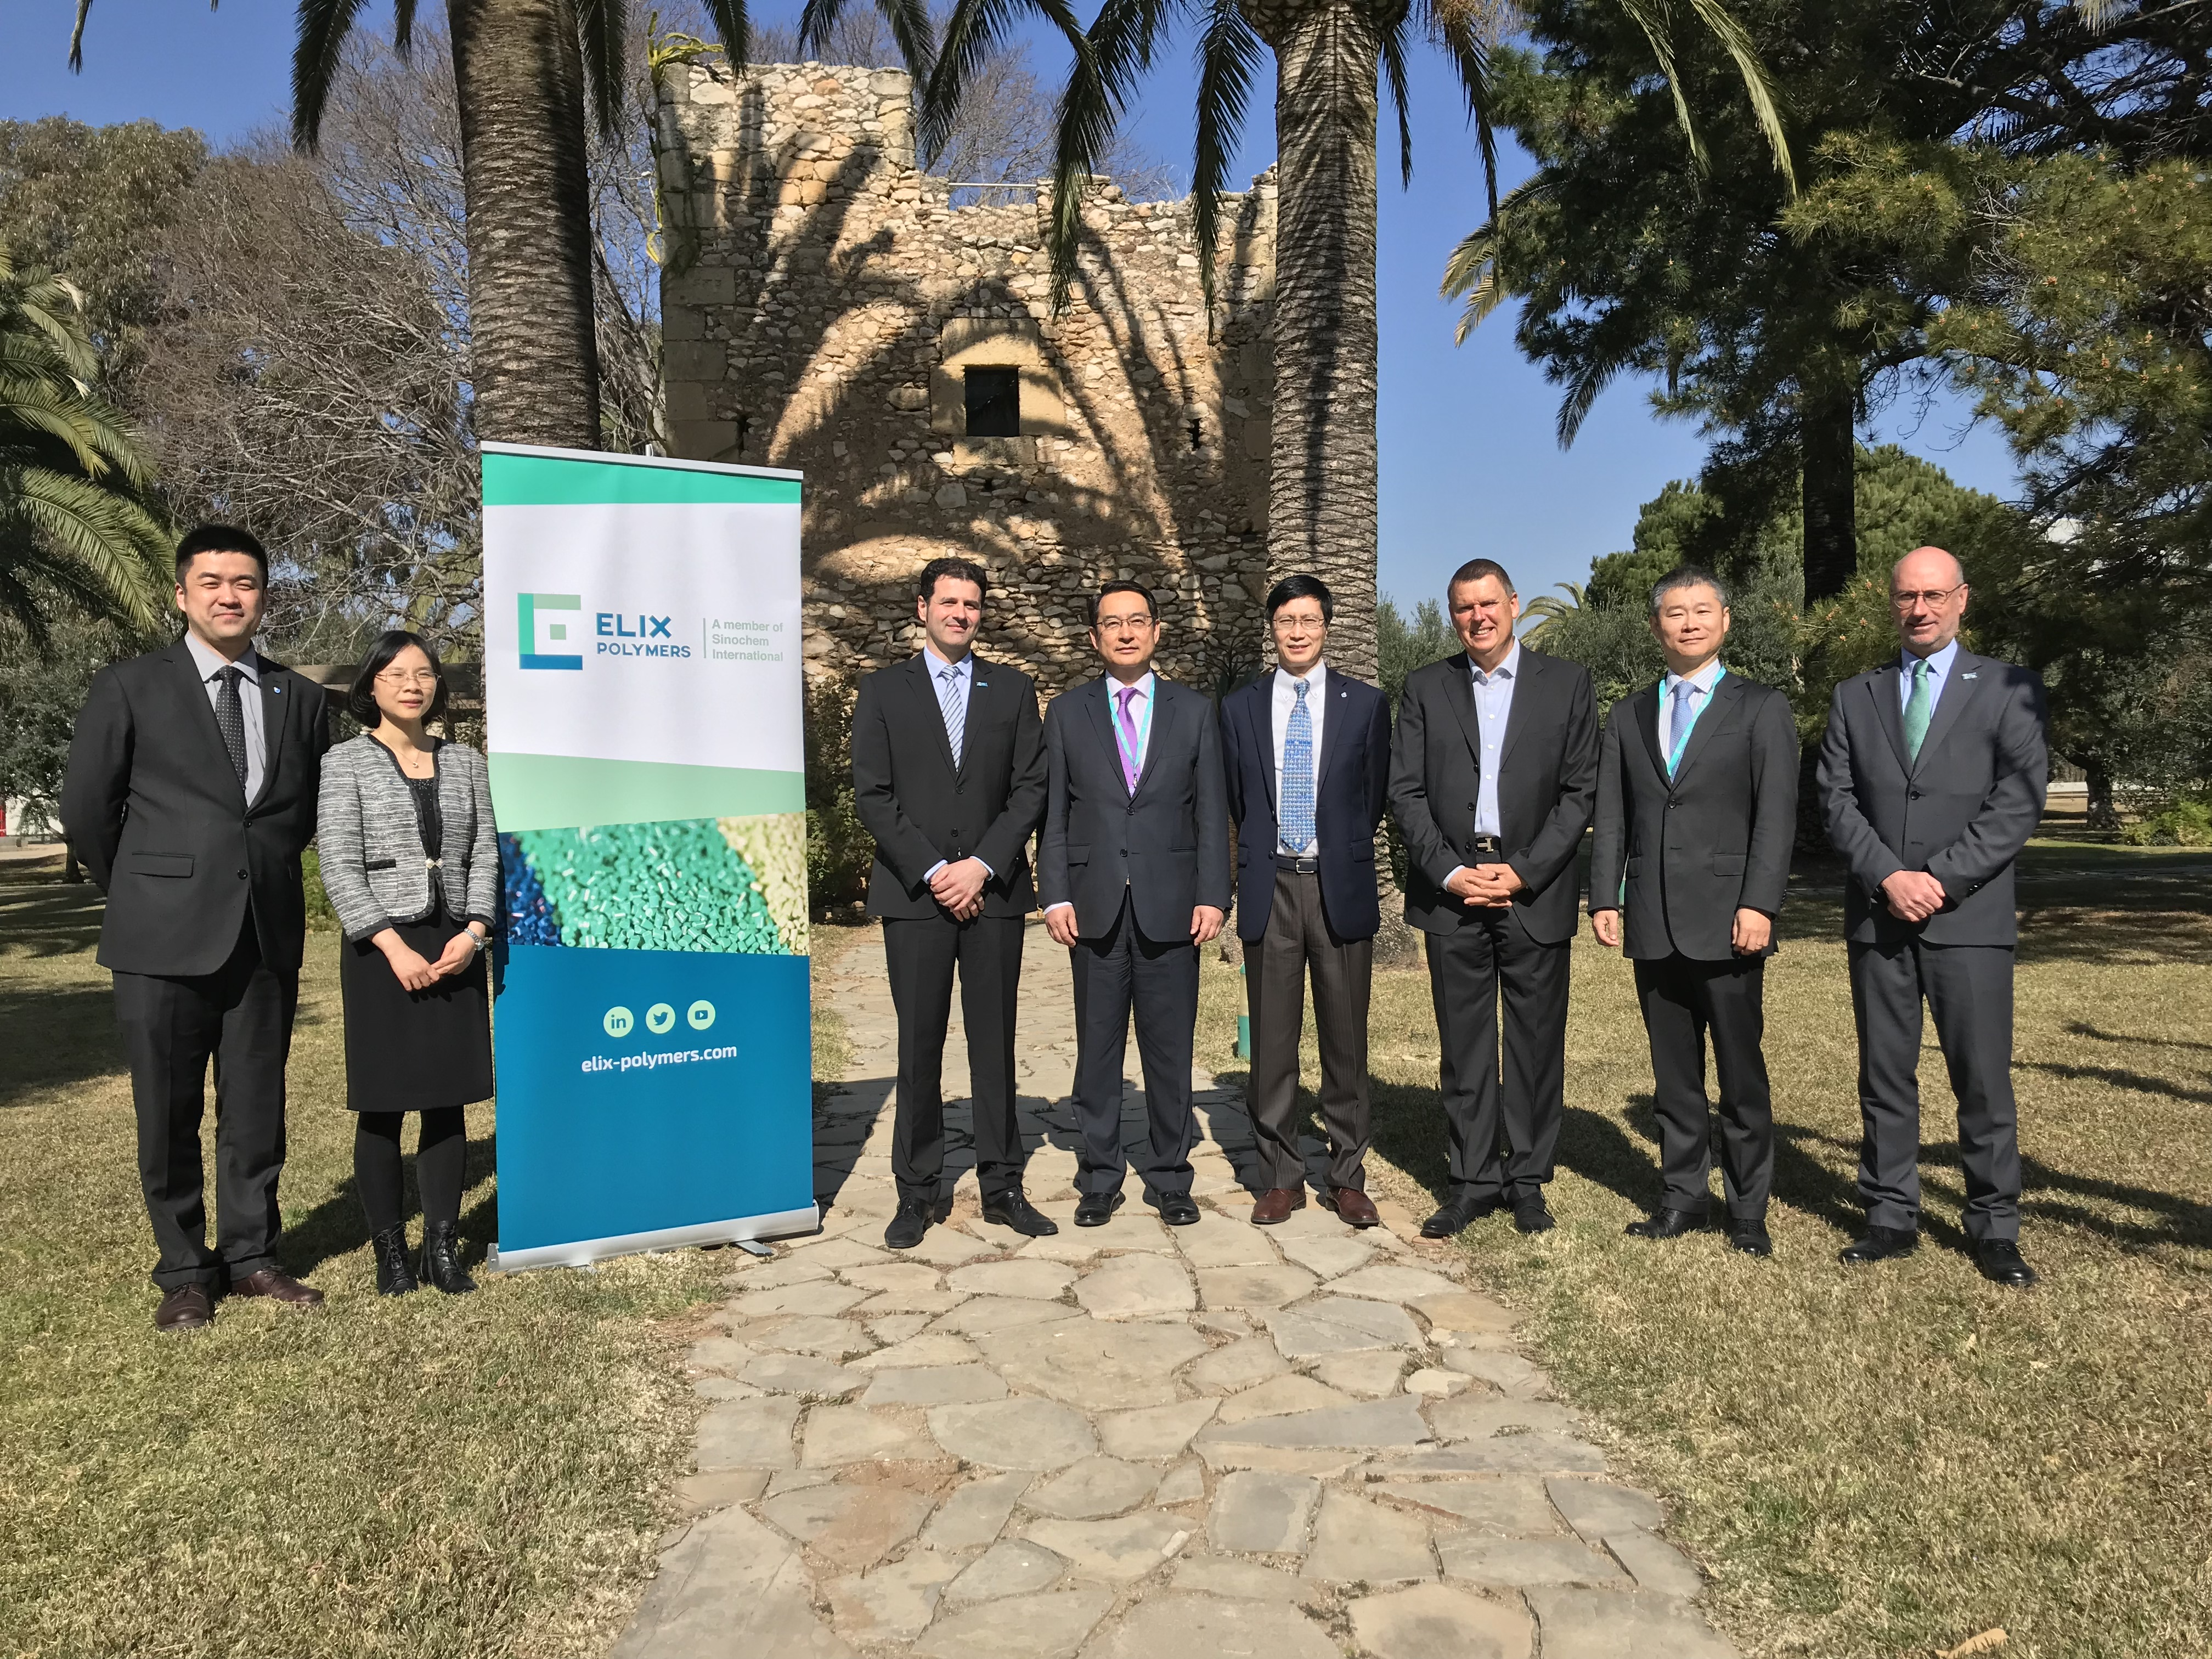 Chinese Ambassador Spain visits ELIX Polymers facilities